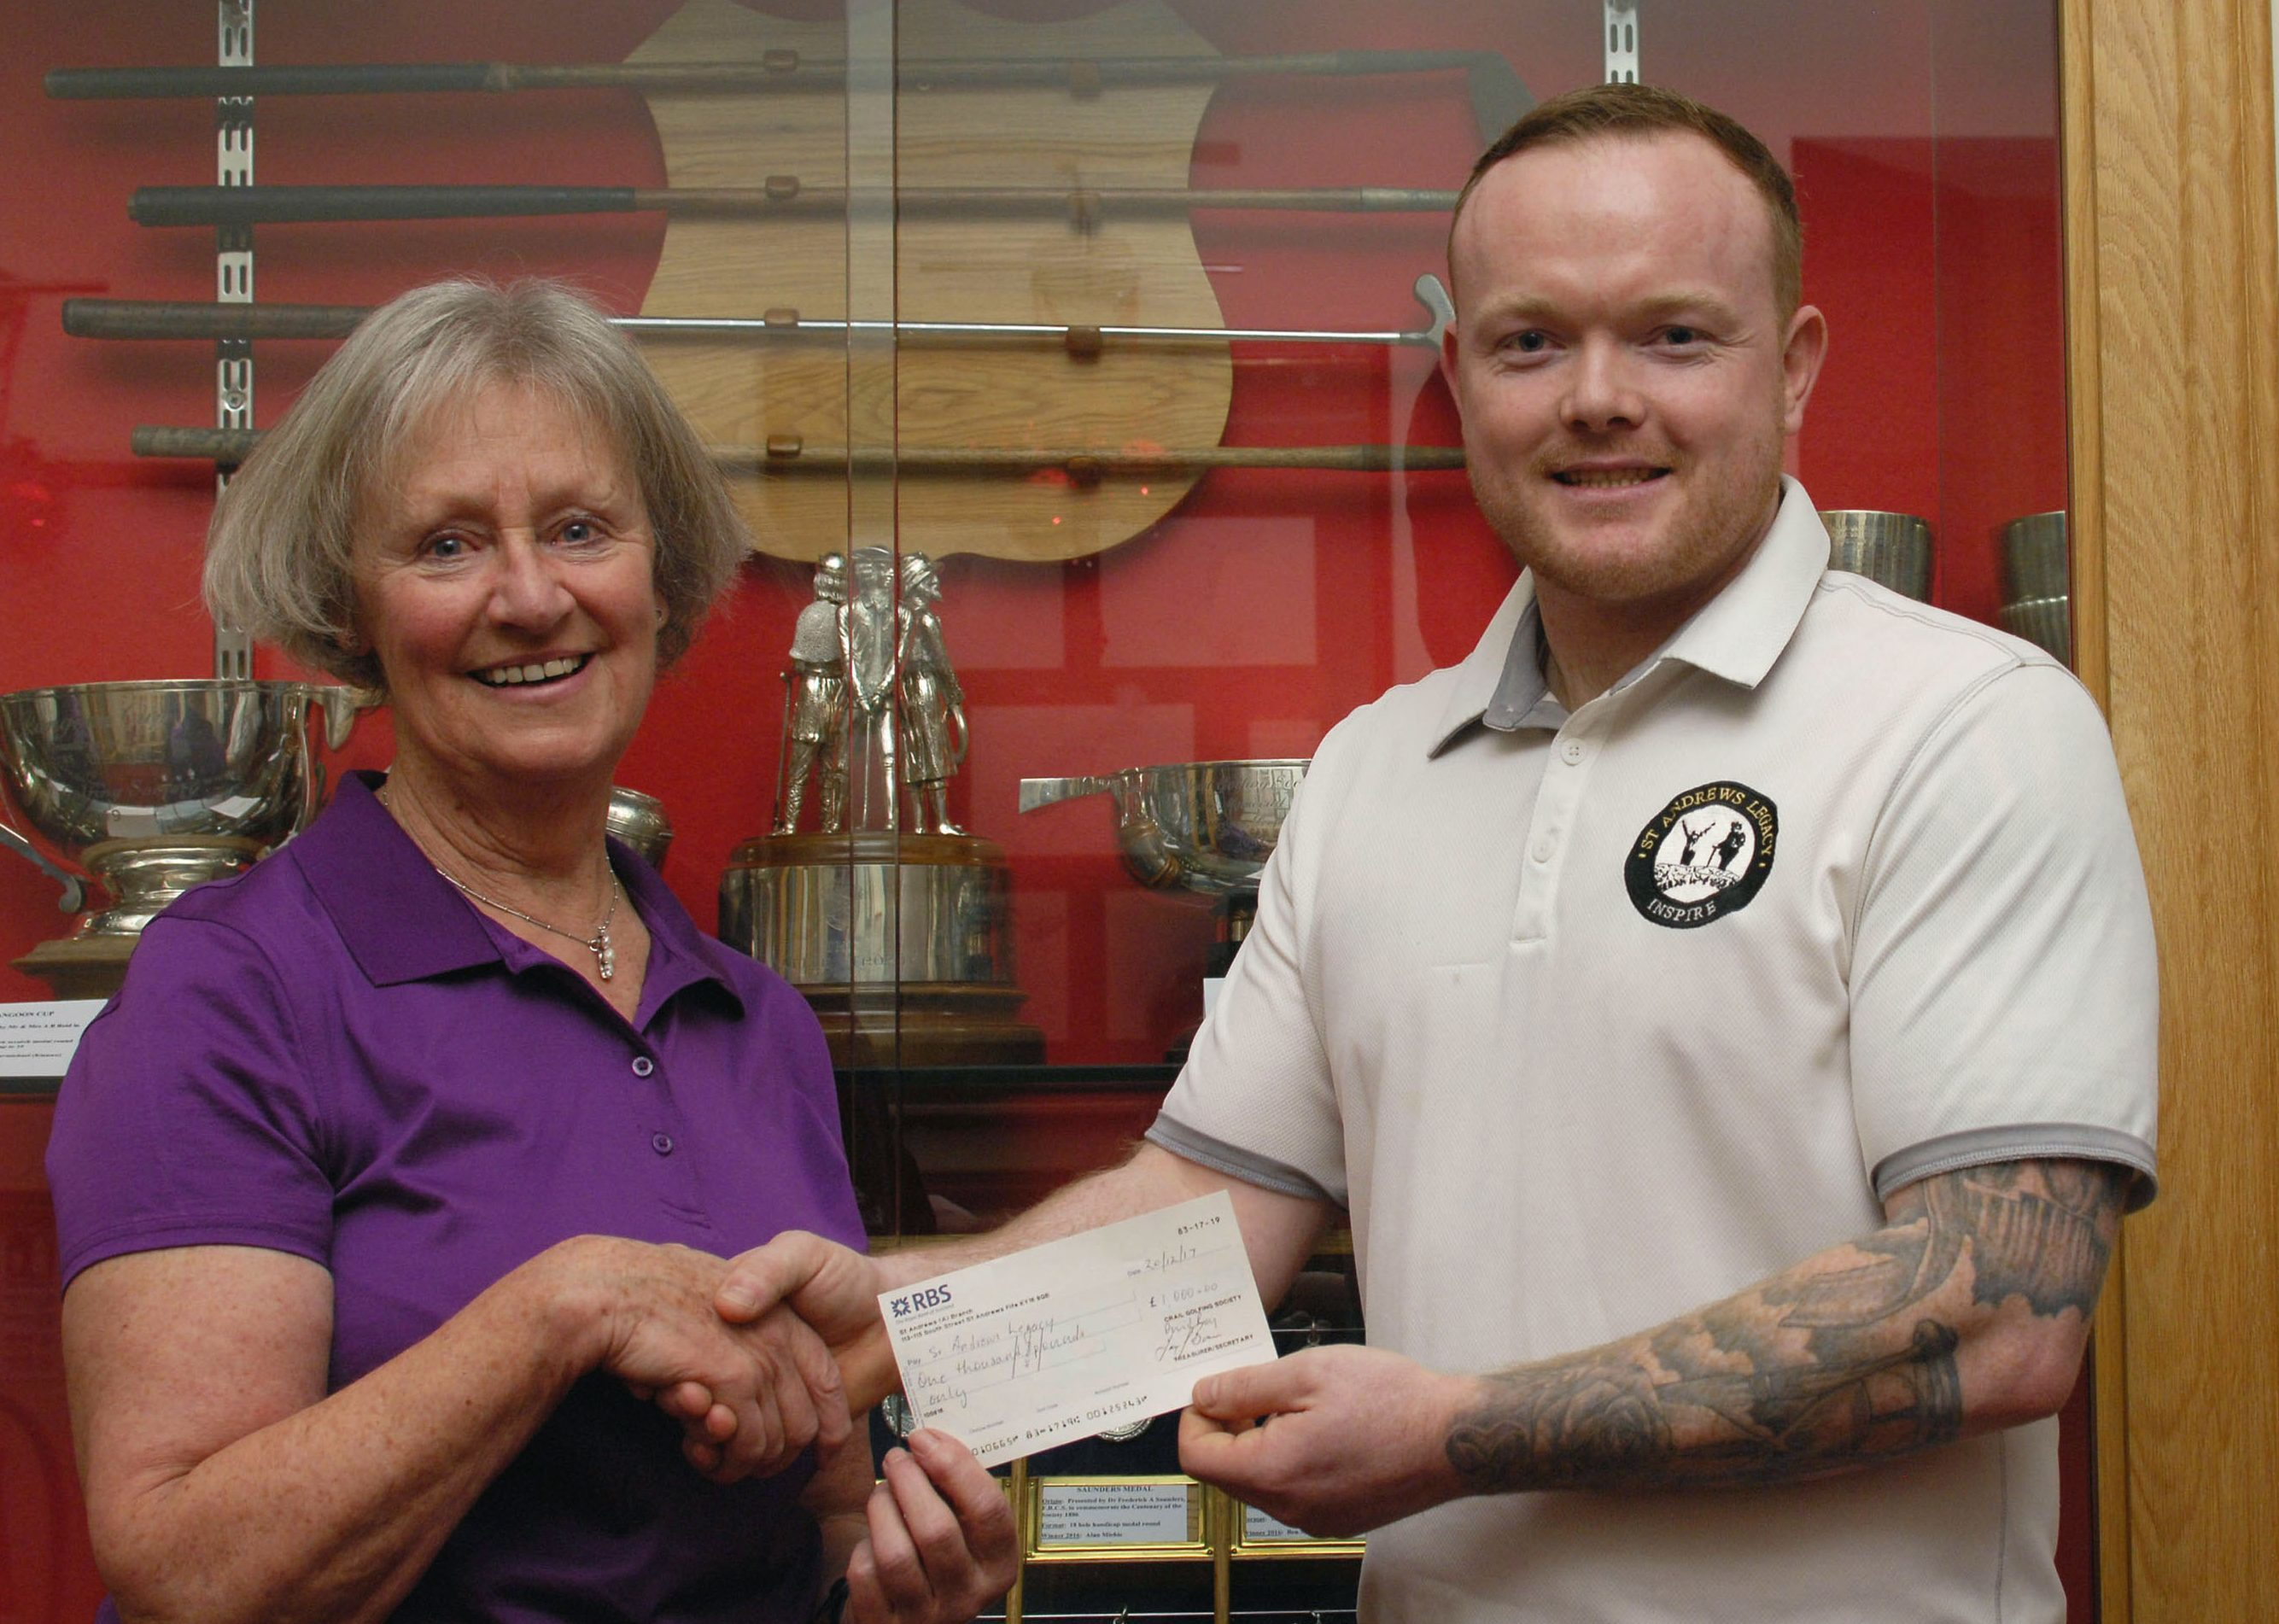 Pam Smith, captain of Crail Golfing Society, presents a cheque for £1000 to David Gillies, representing St Andrews Legacy, a charity that helps ill and injured military veterans towards recovery through golf.